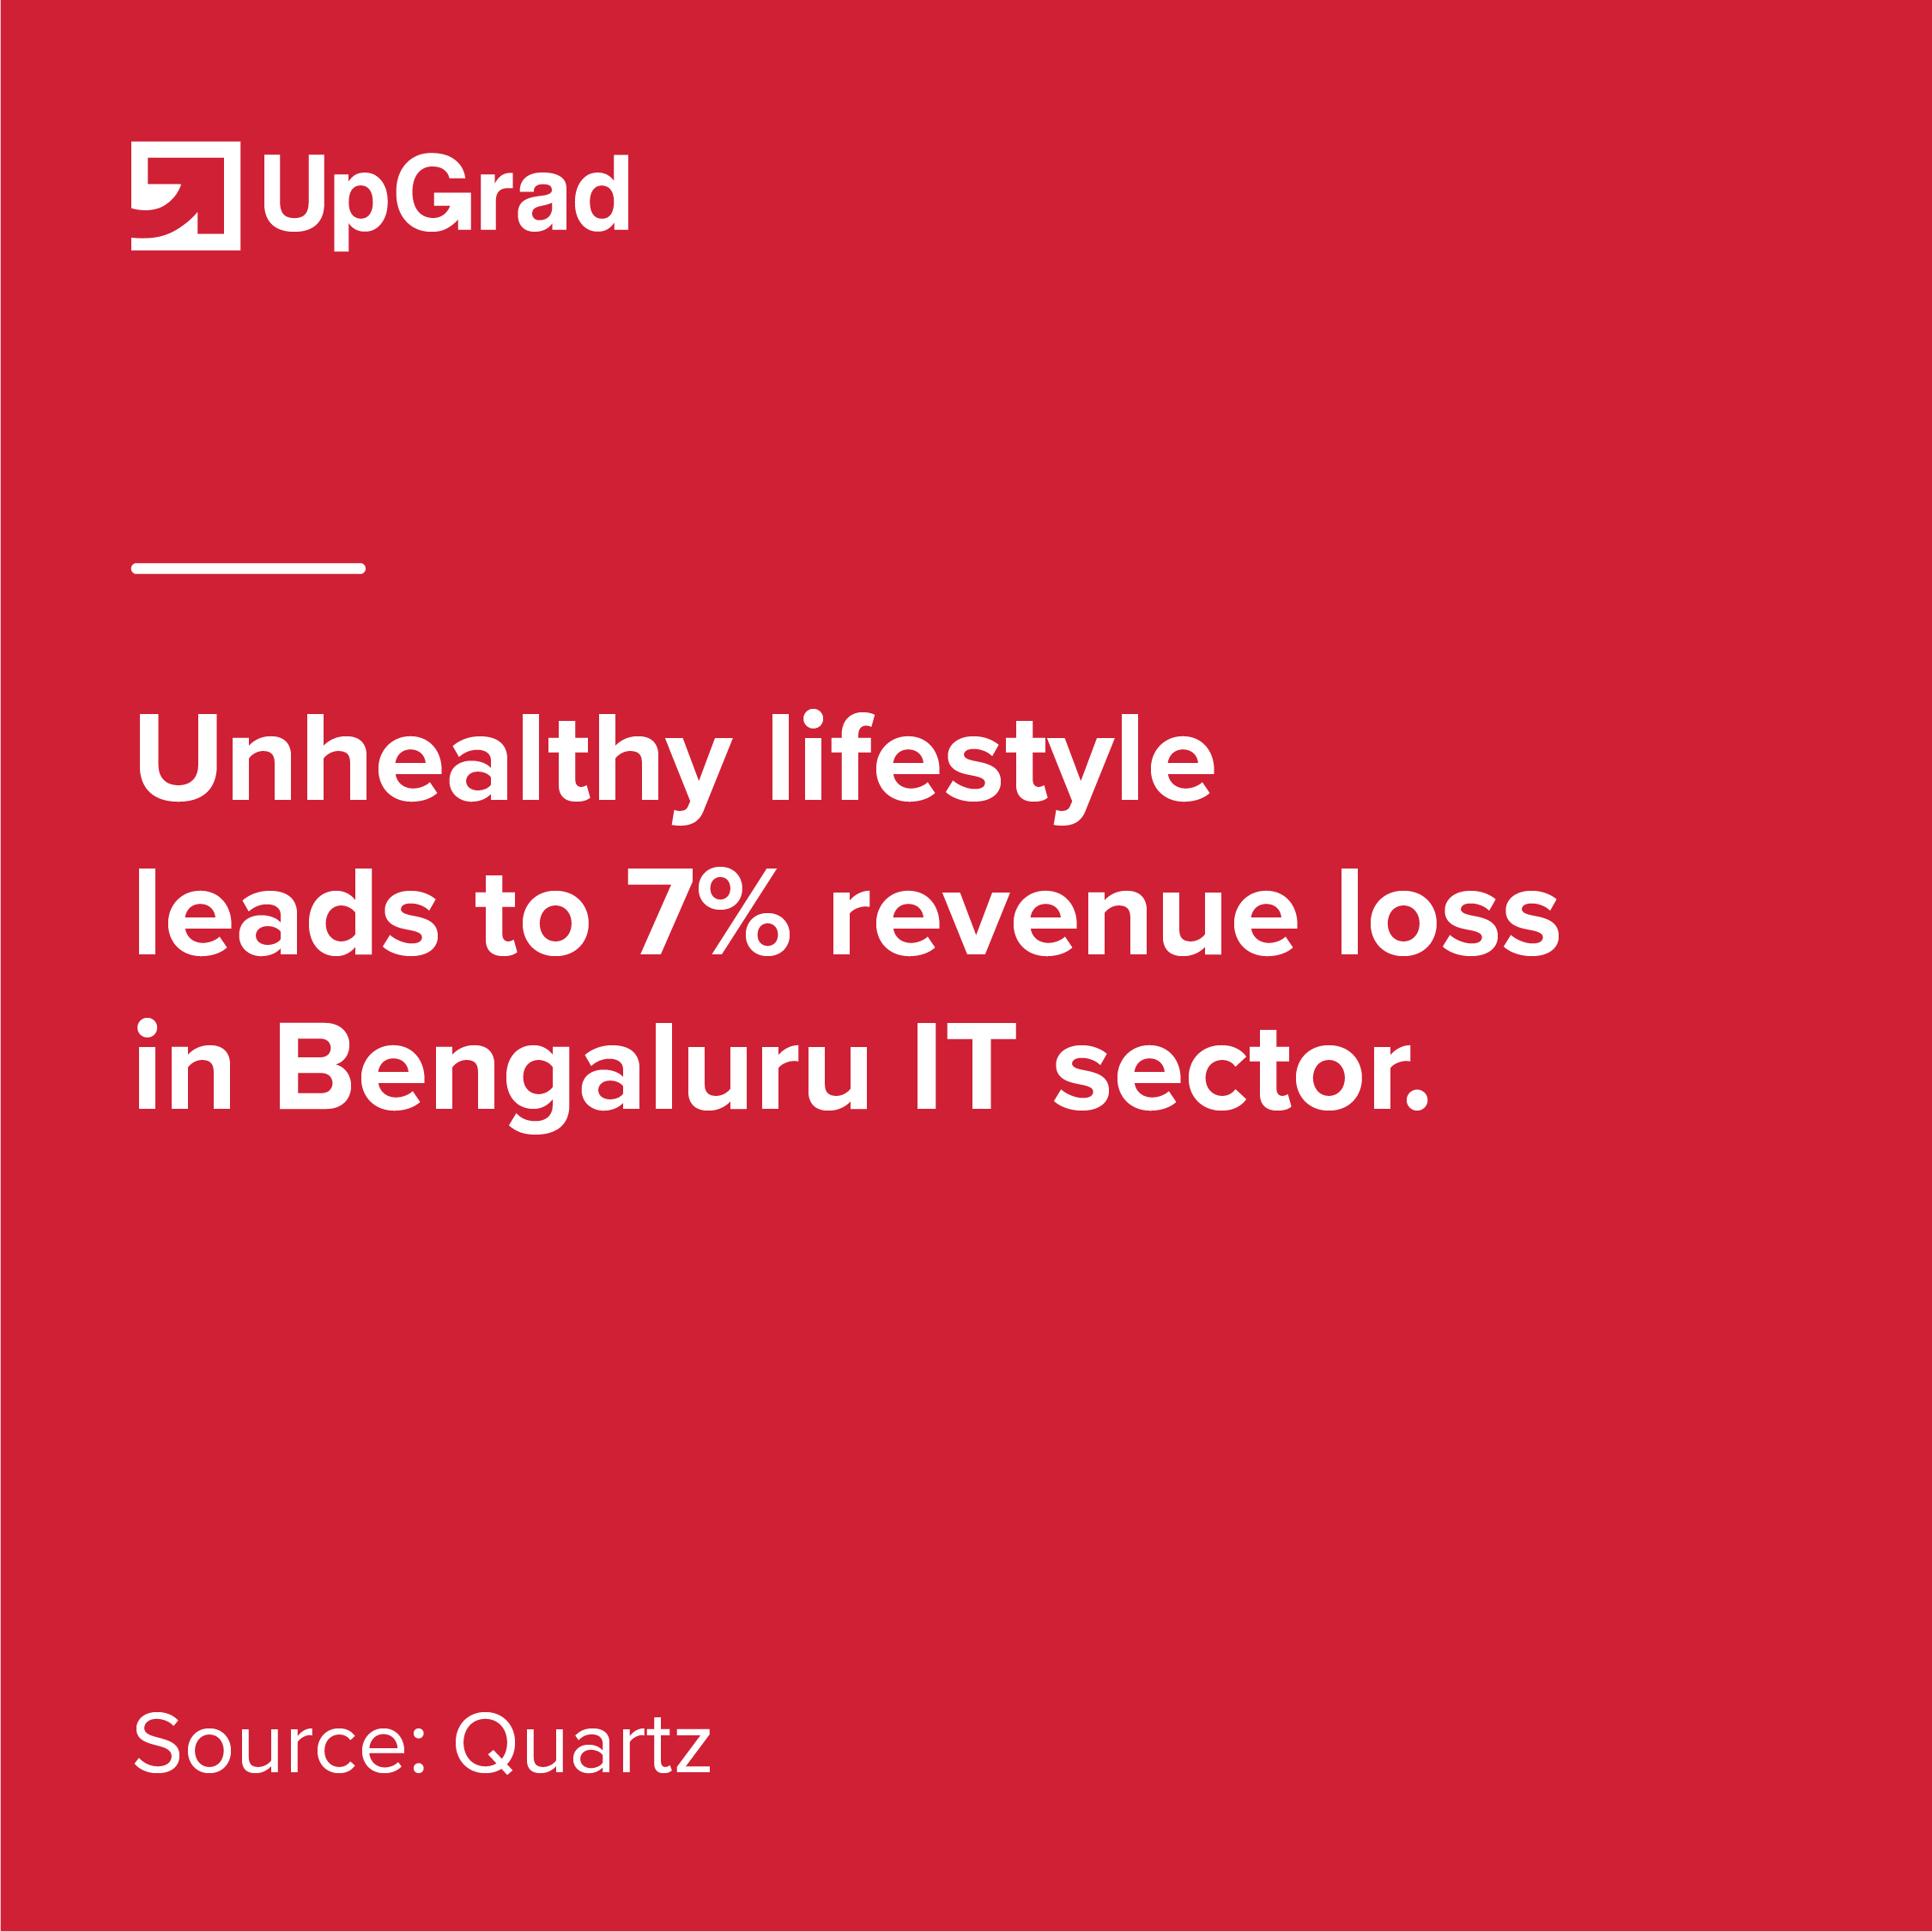 unhealthy lifestyle in bengaluru